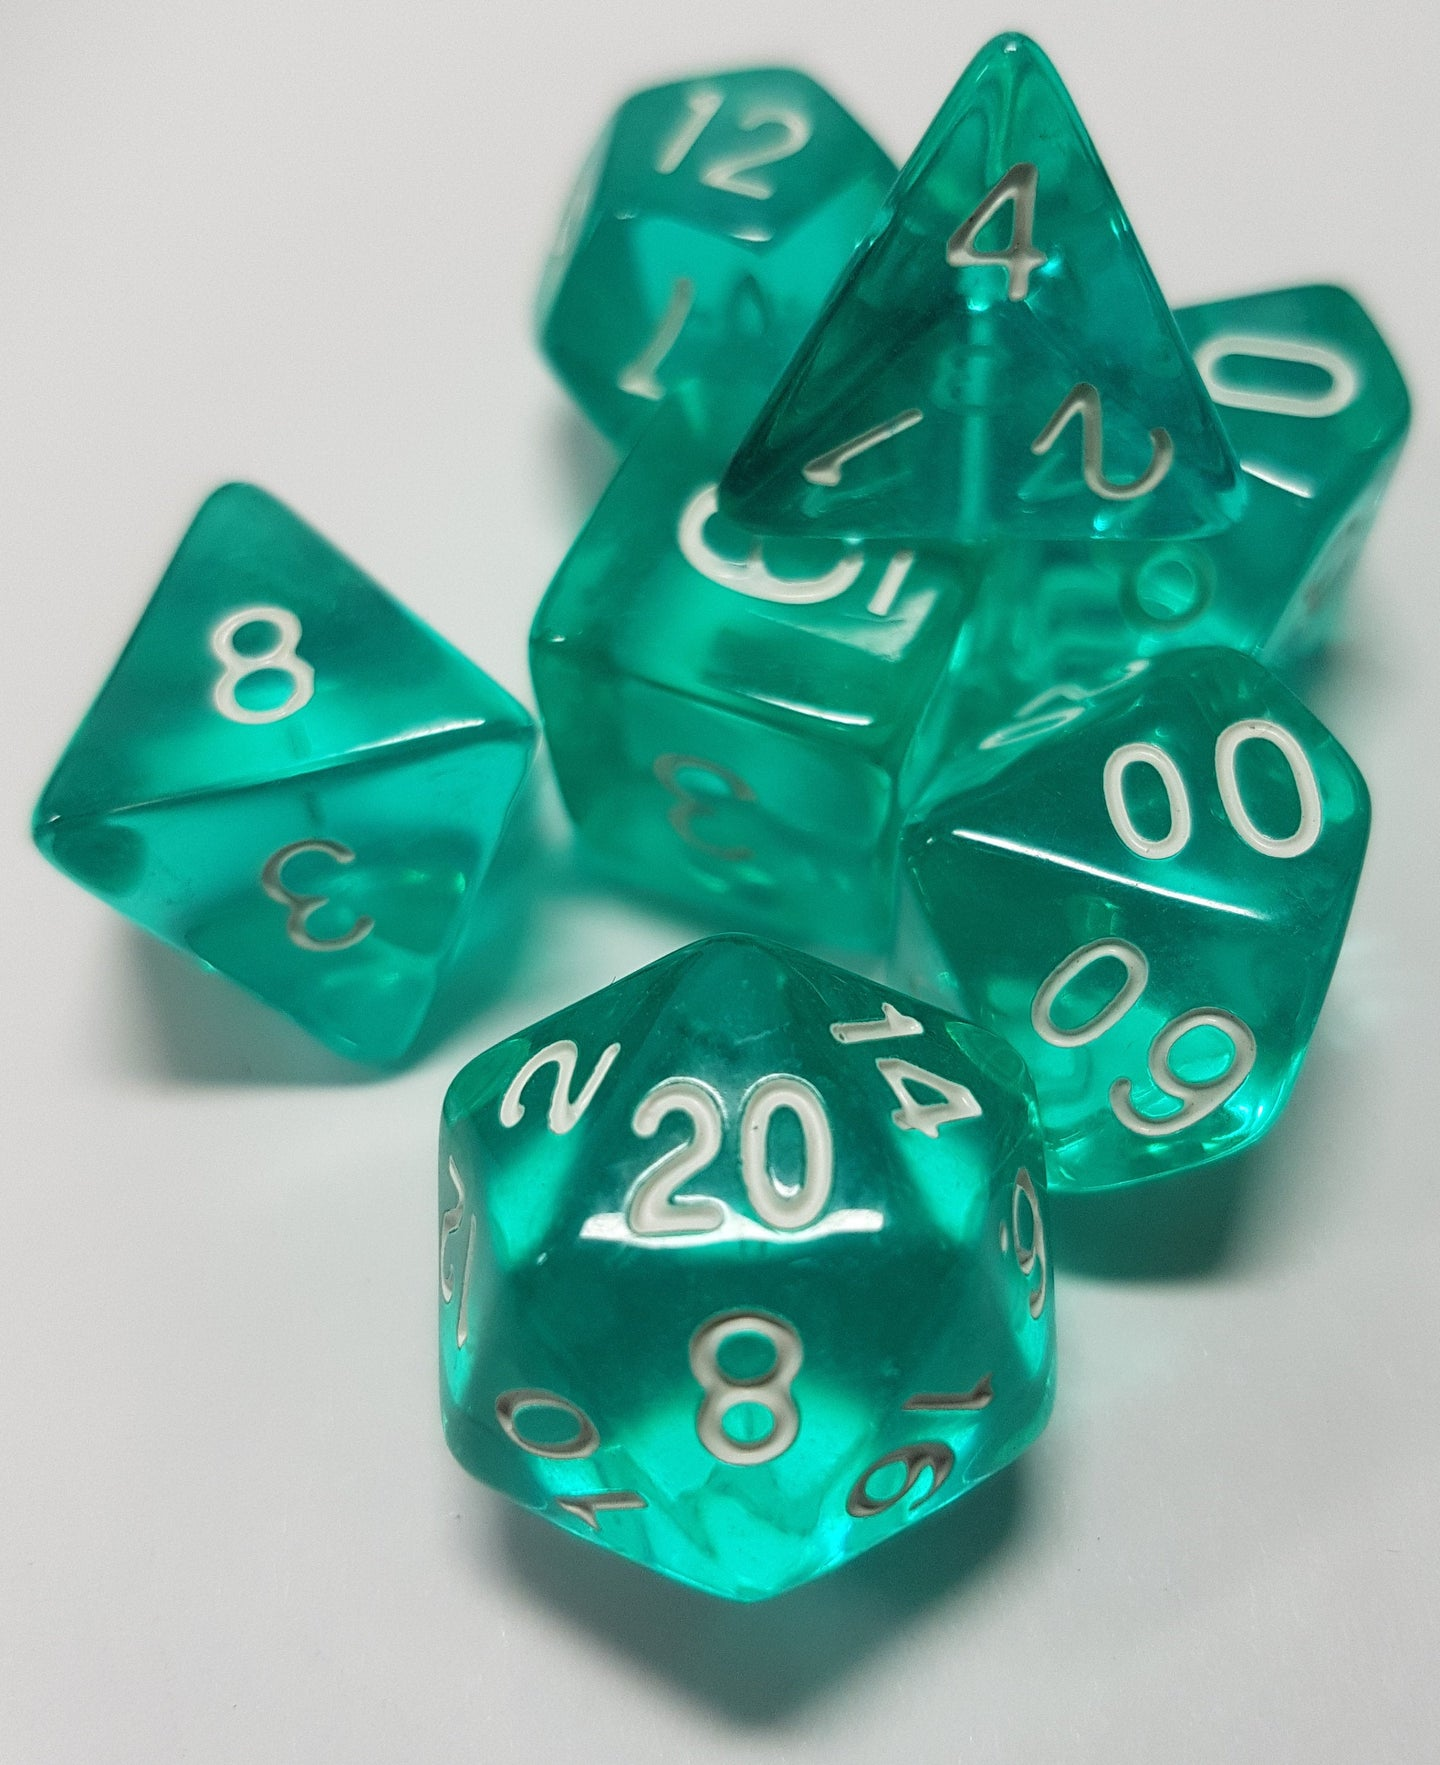 Teal Blue/Green Prismatic Orb 7pc Dice Set